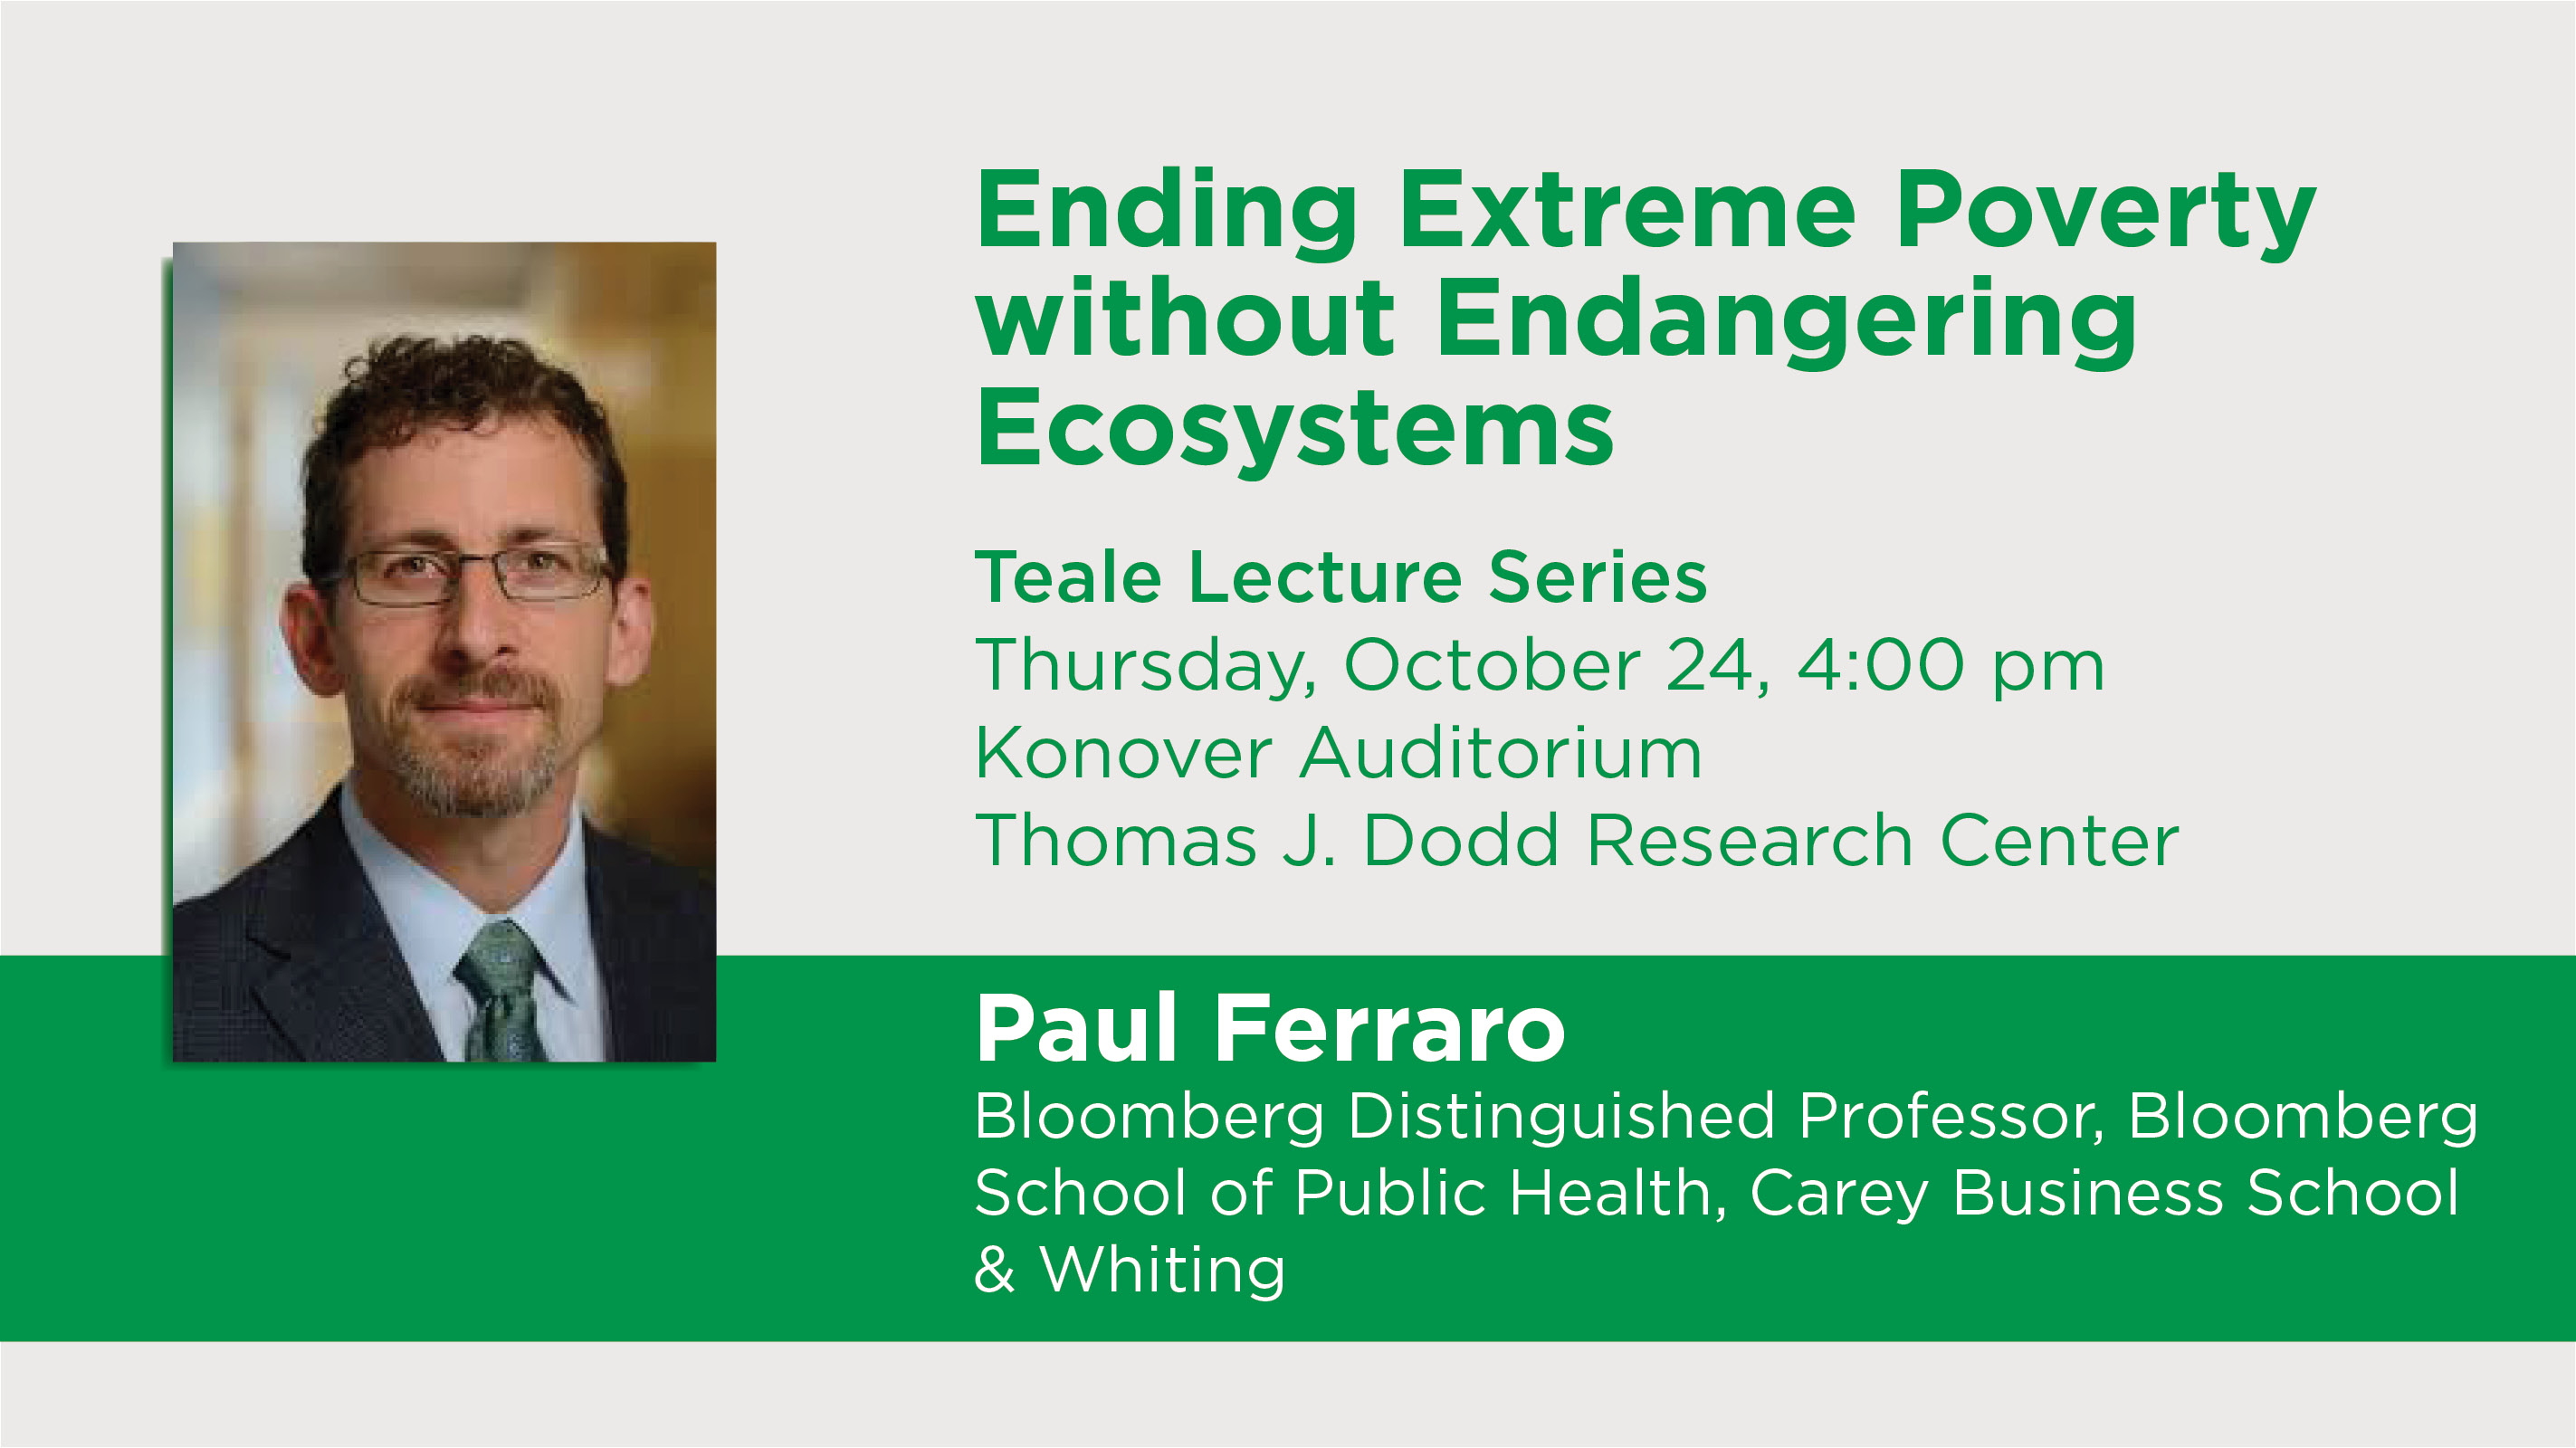 Ending Extreme Poverty without Endangering Ecosystems Teale Lecture Series Thursday, October 24, 4:00 pm Konover Auditorium Thomas J. Dodd Research Center Paul Ferraro Bloomberg Distinguished Professor, Bloomberg School of Public Health, Carey Business School & Whiting School of Engineering, Johns Hopkins University